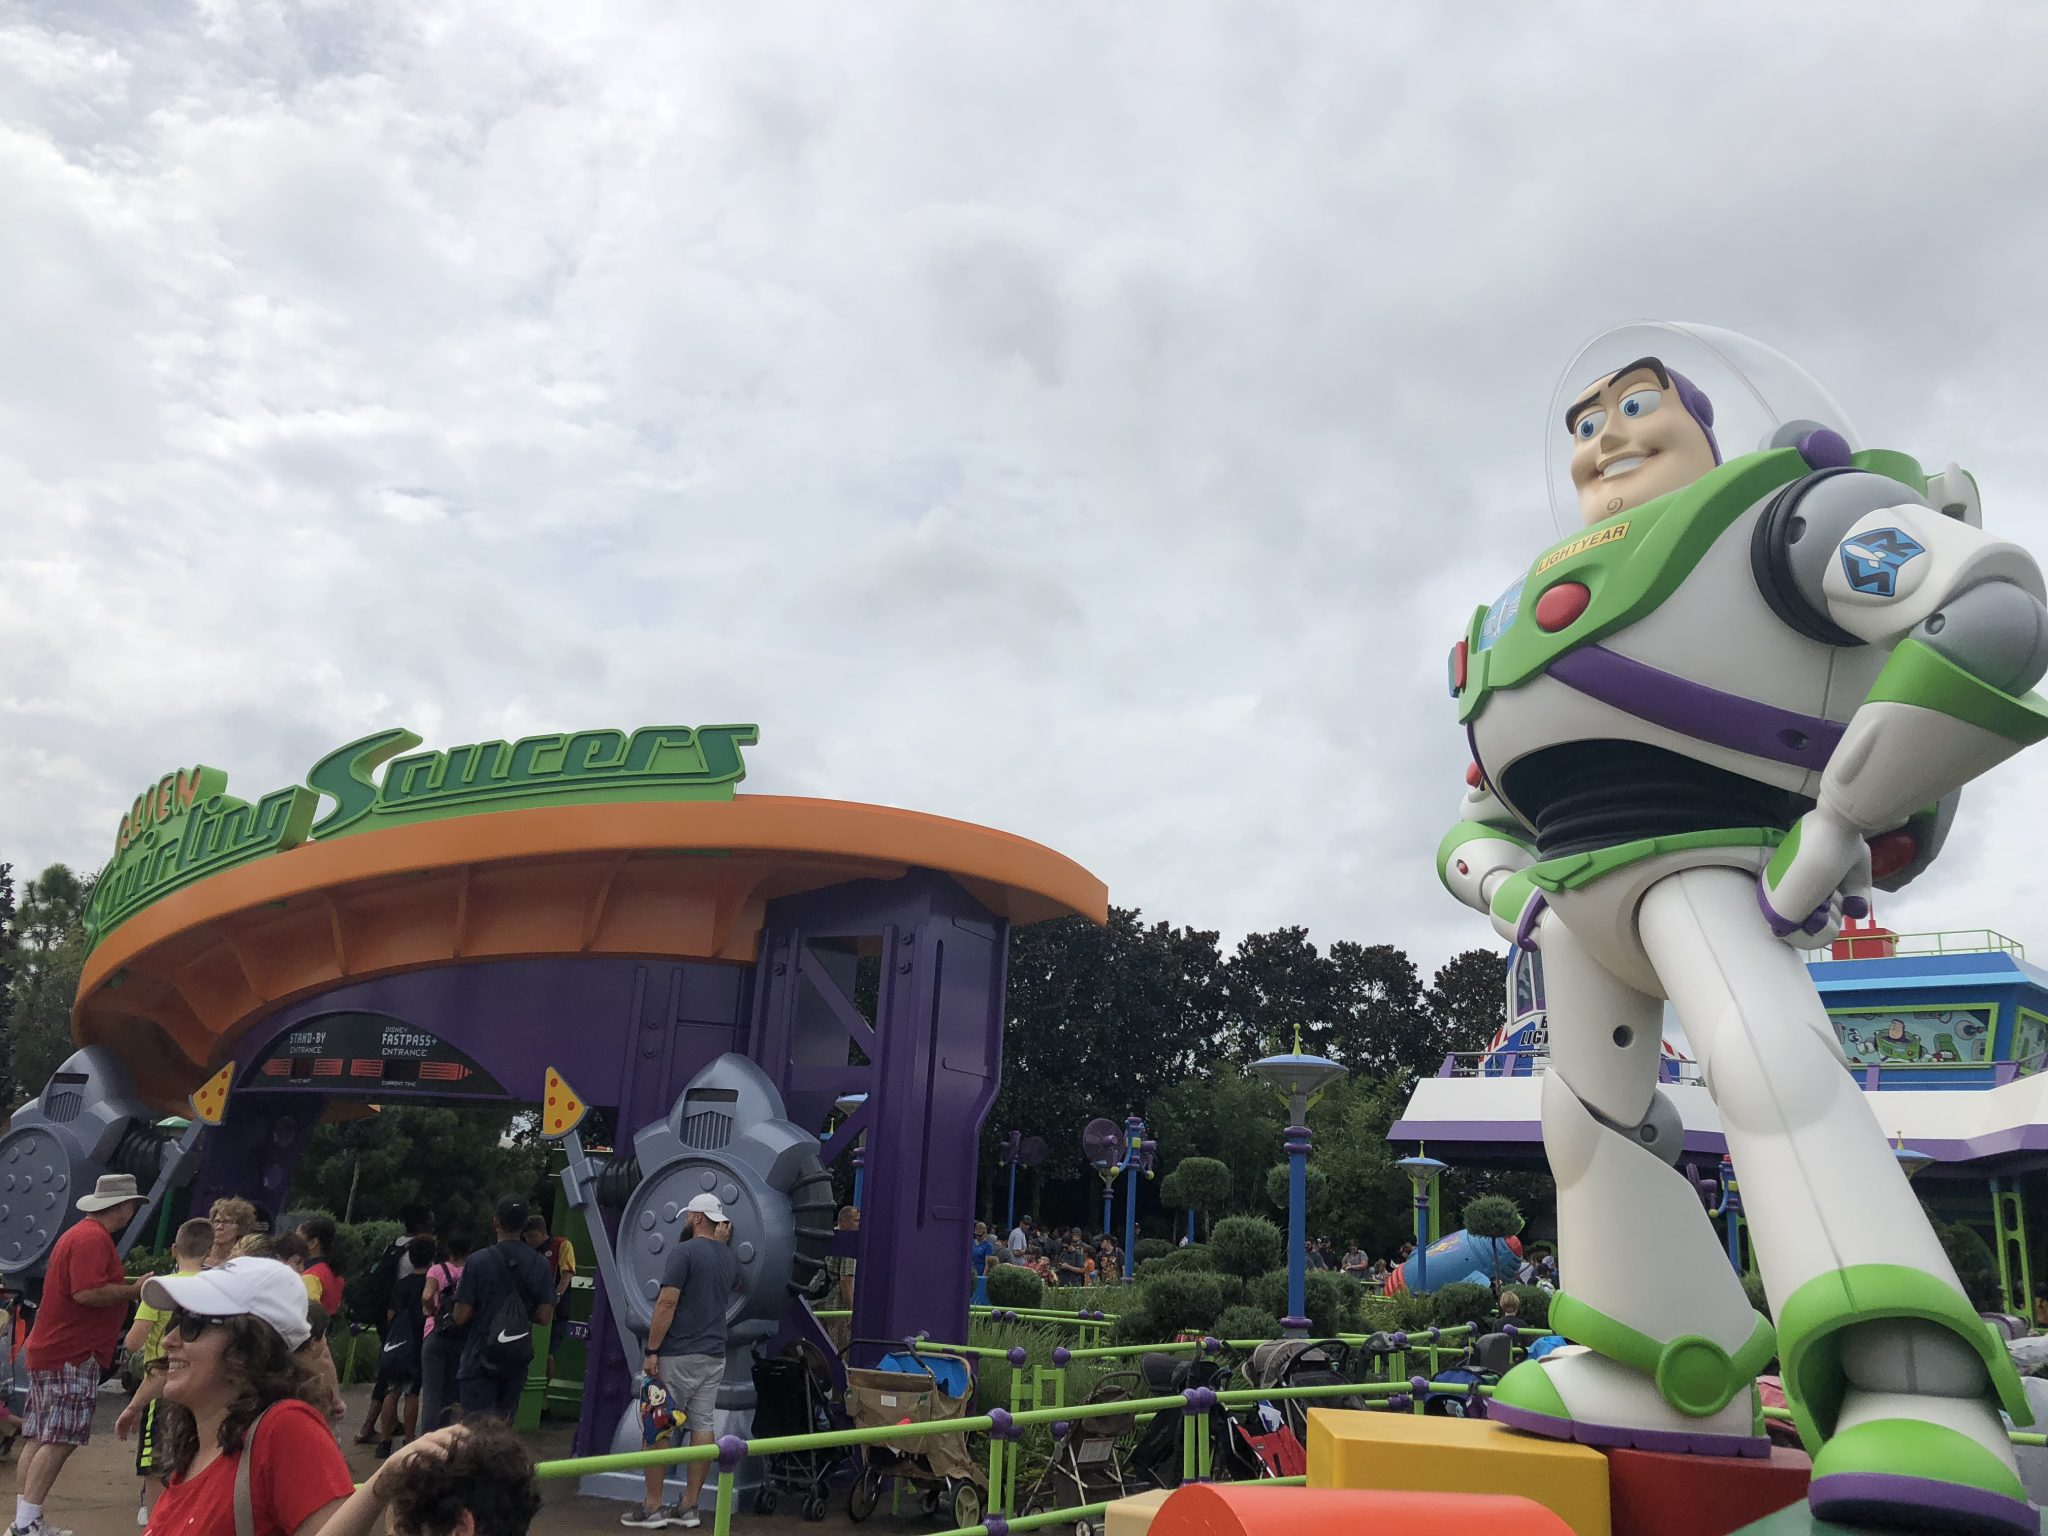 Buzz Lightyear statue standing outside Alien Swirling Saucers at Toy Story Land